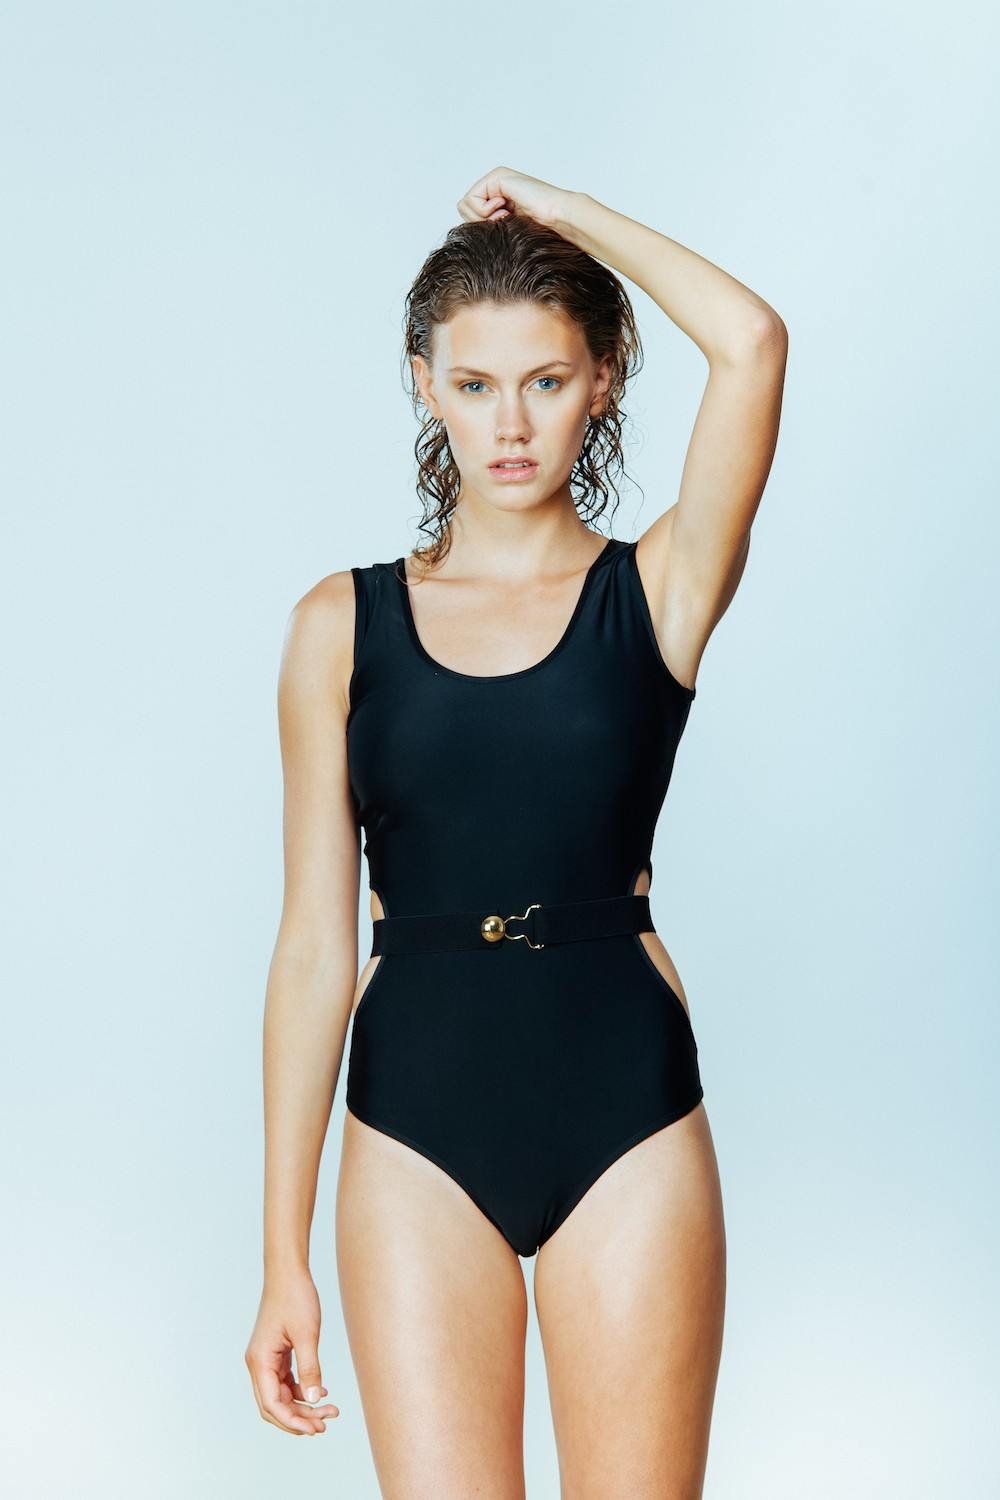 Swim Splash Swimsuit by Kriss Soonik